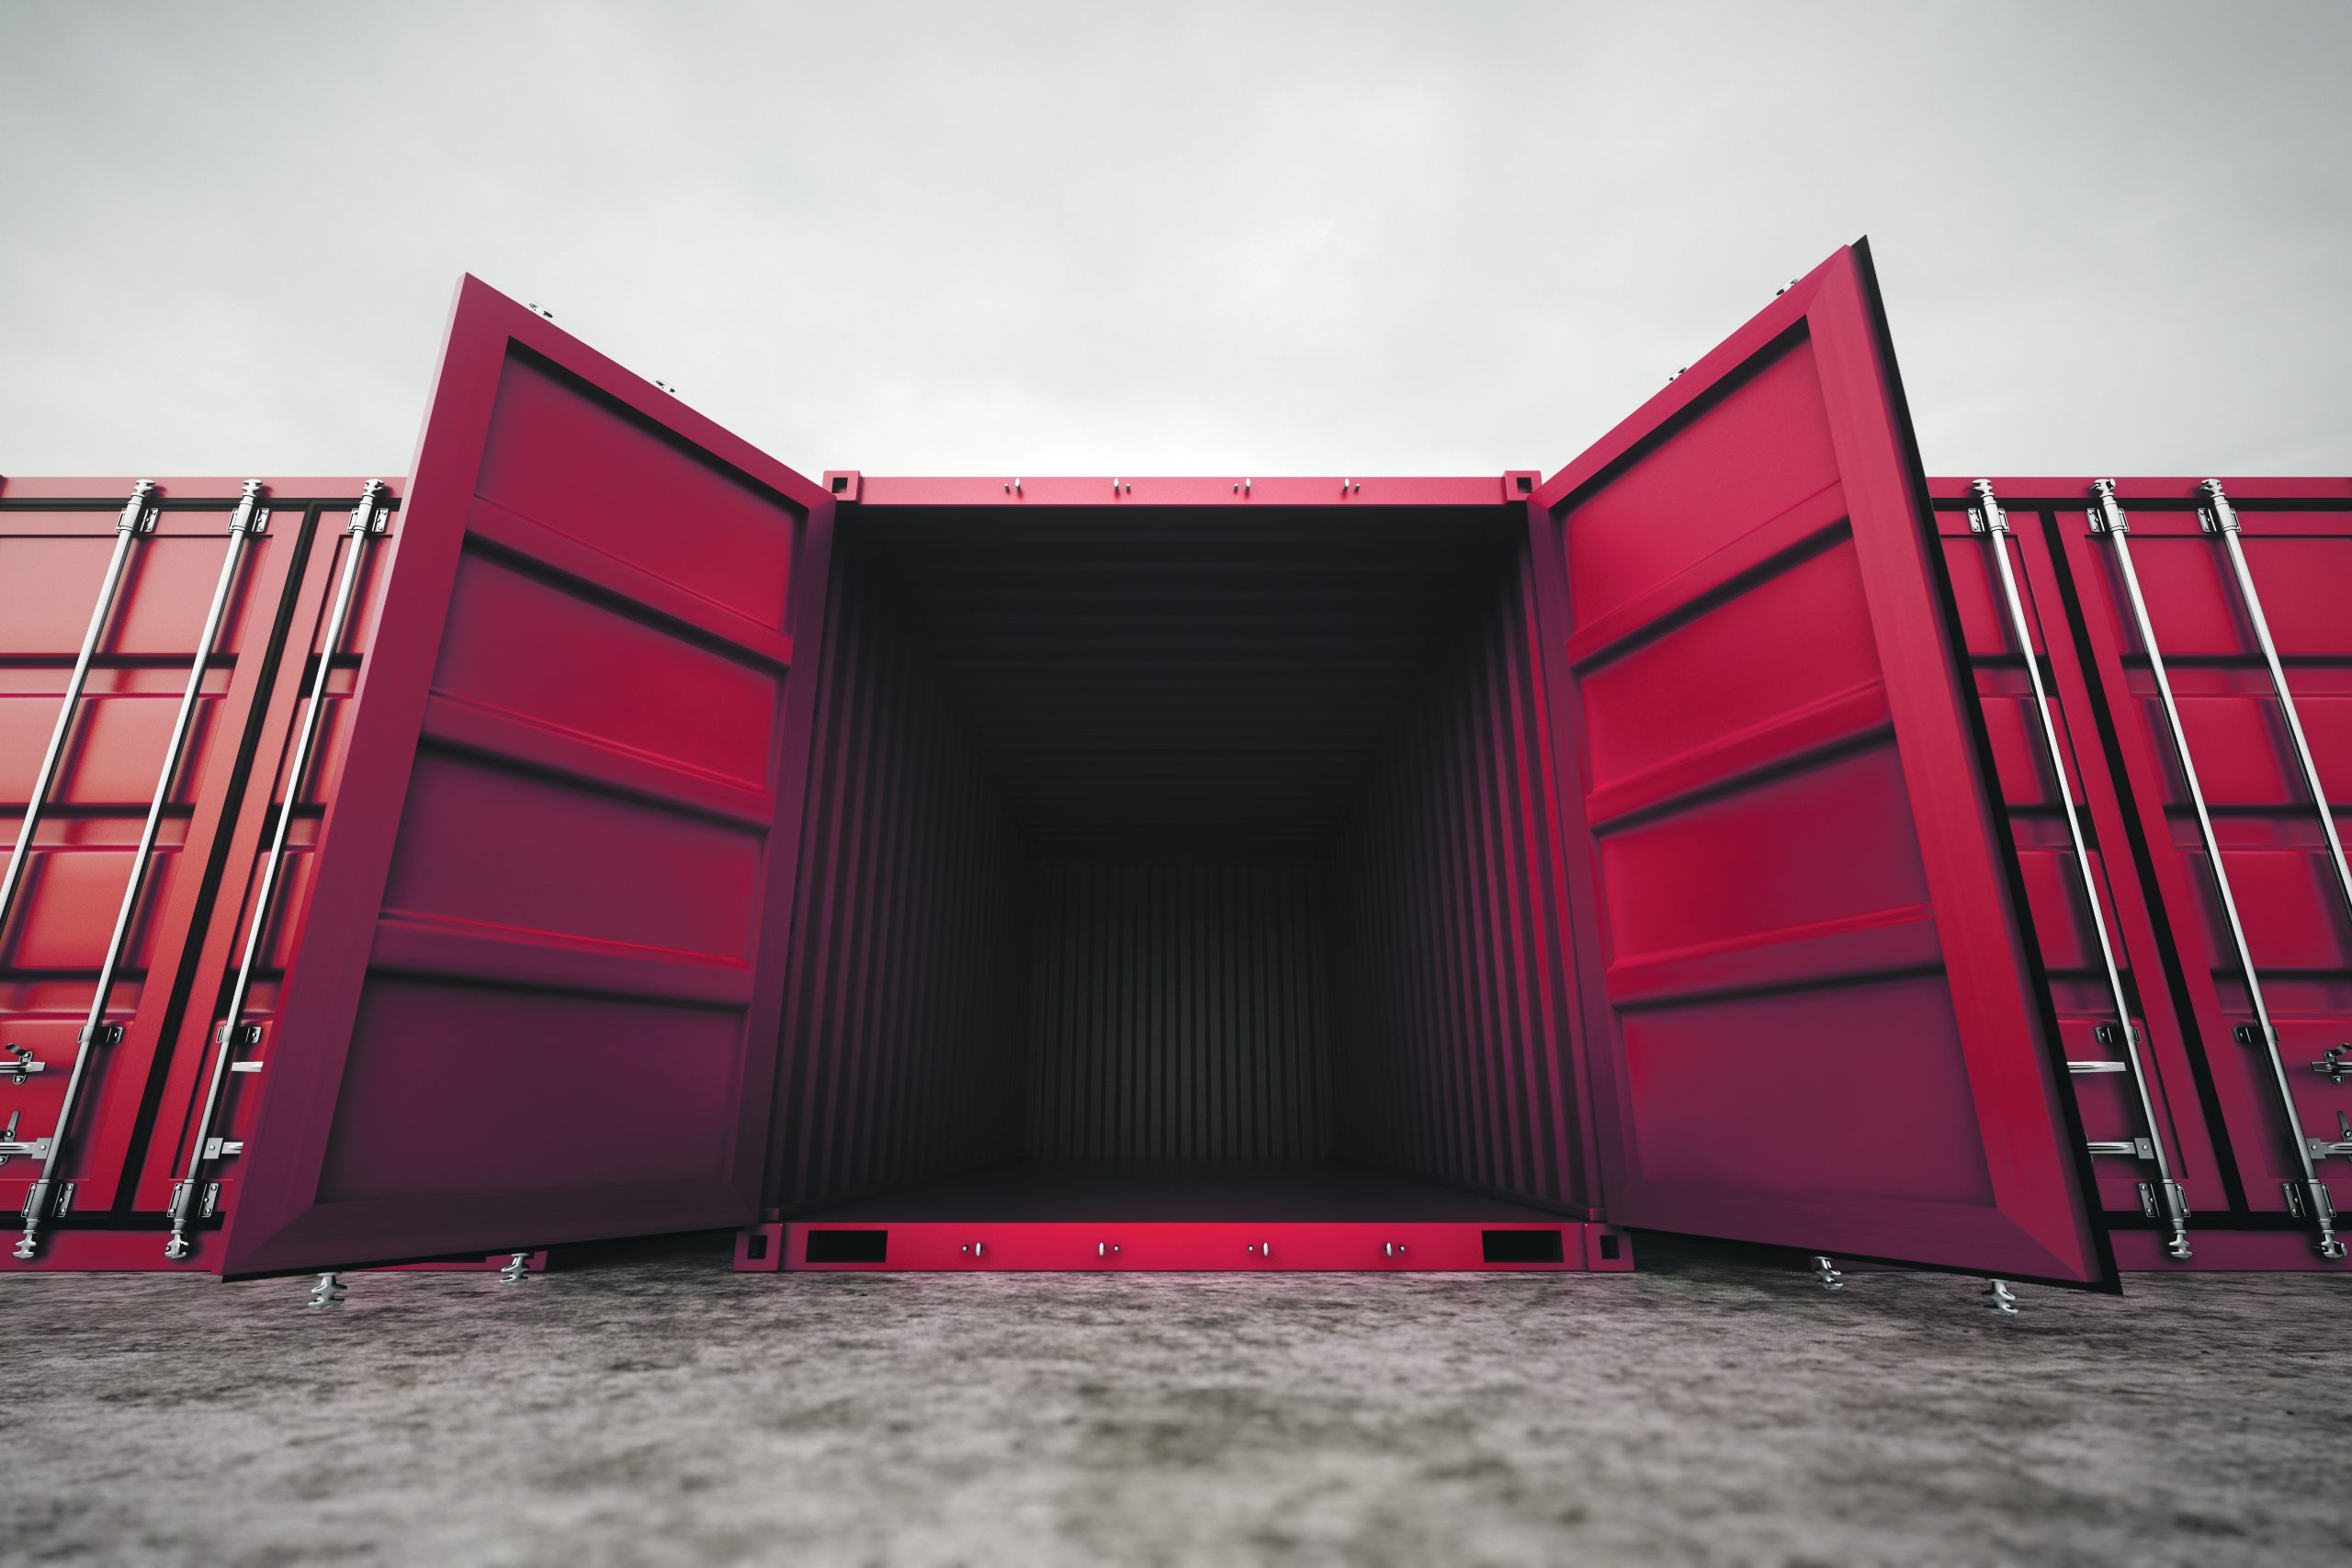 Picture,Of,Red,Open,Containers,In,The,Row. lege container